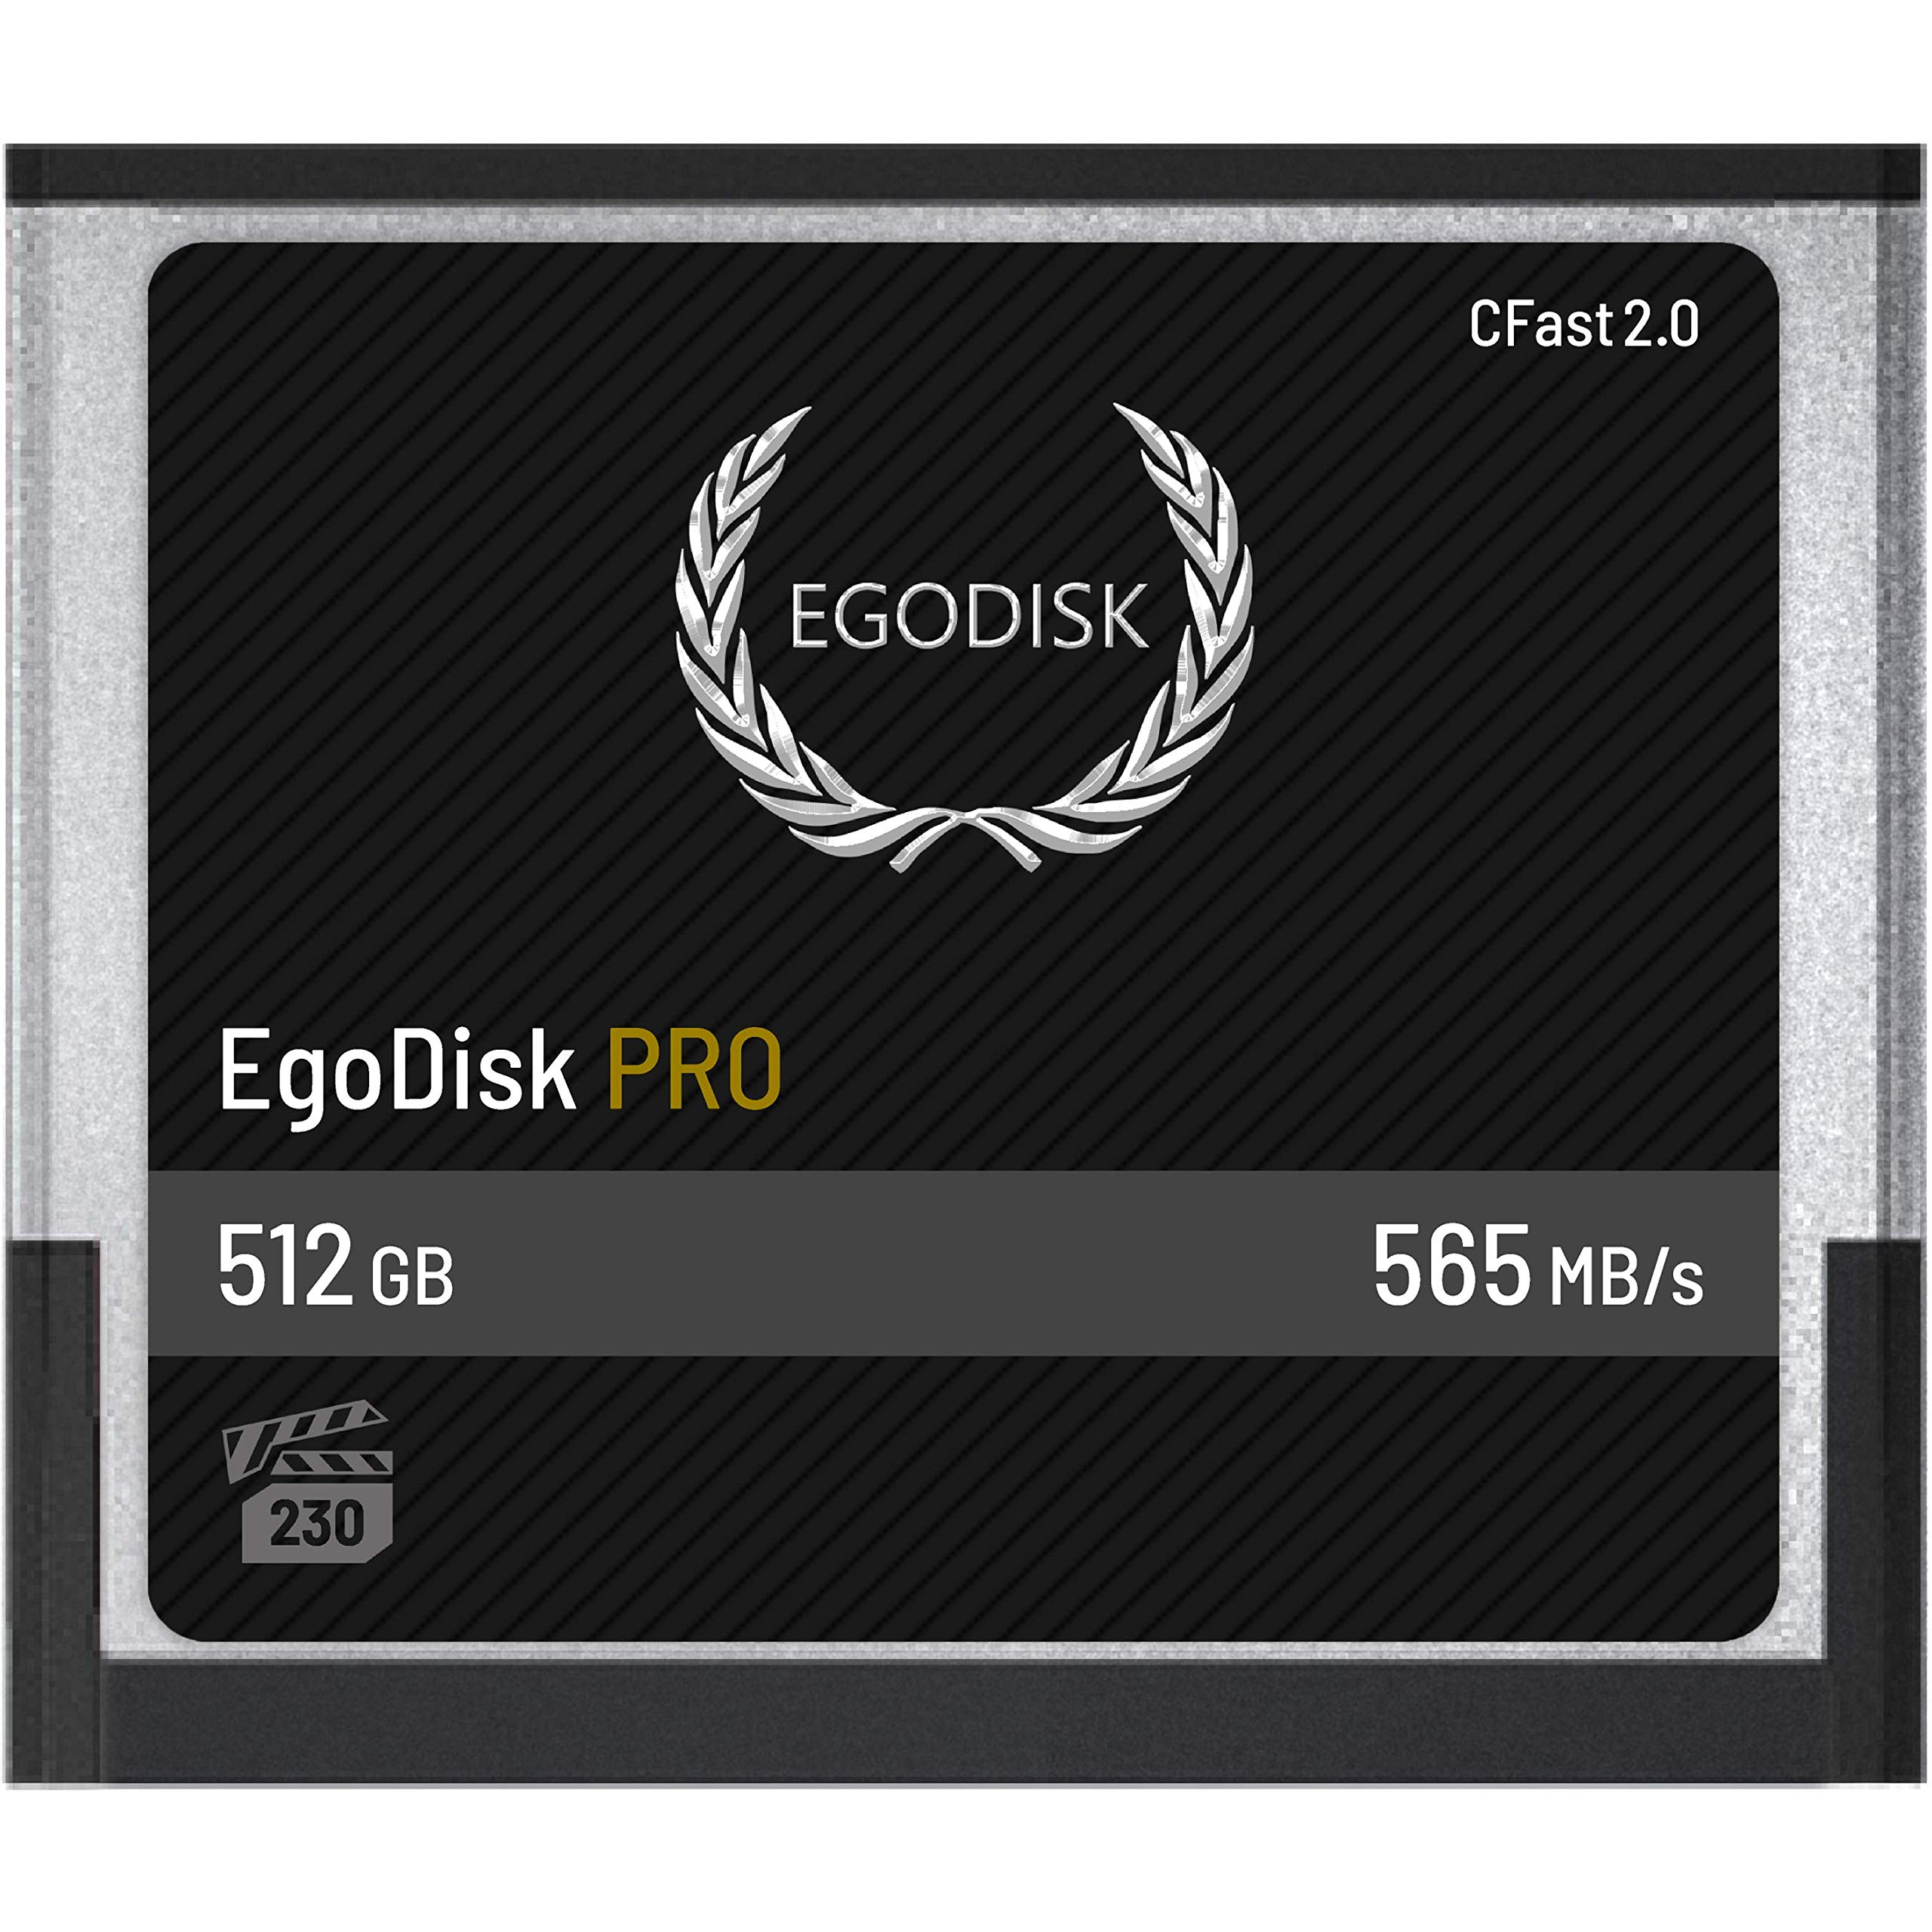 EgoDisk PRO 512GB CFast 2.0 Card - (BLACKMAGIC DESIGN URSA MINI 4K • 4.6K | CANON • XC10 • XC15 • 1DX MARK II • C200 • C700 | HASSELBLAD H6D-50C • H6D-100C | PHANTOM VEO S) - 3 Year Warranty by EgoDisk